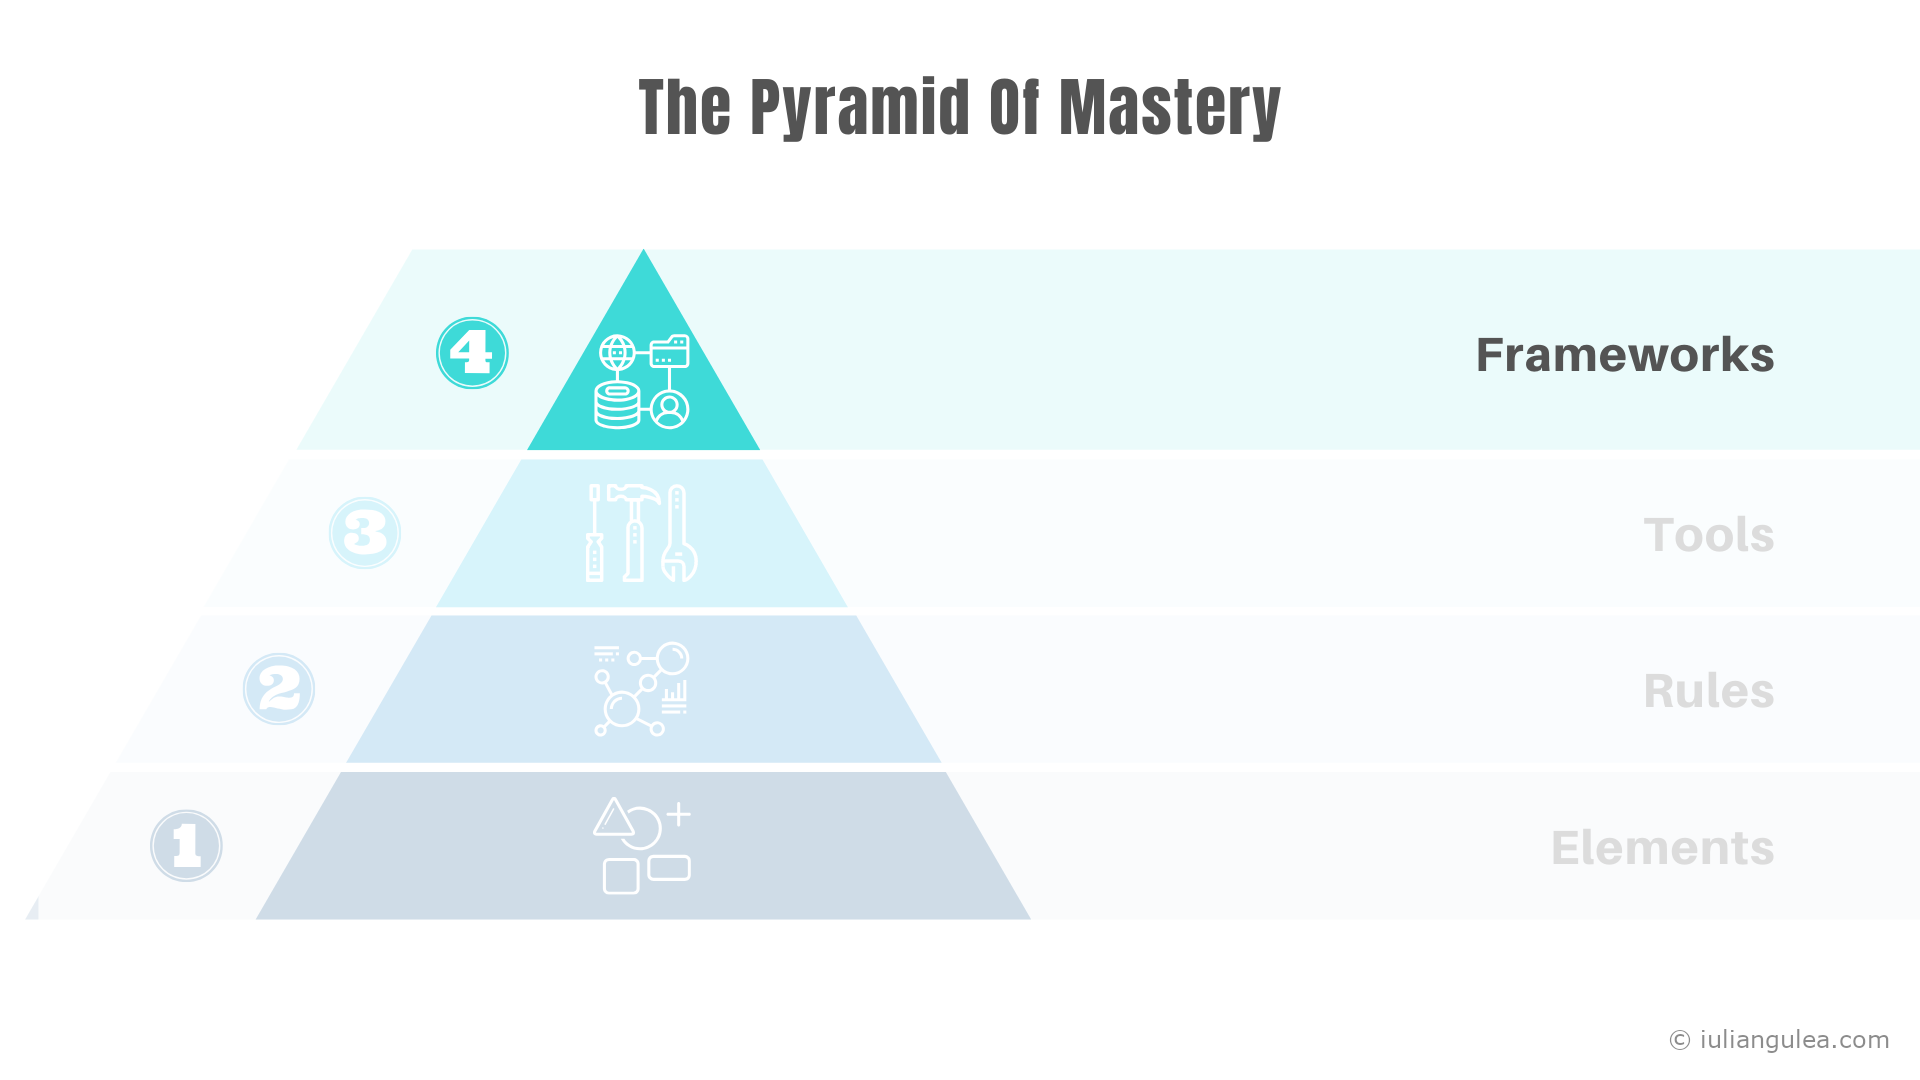 The Pyramid Of Mastery - The Frameworks